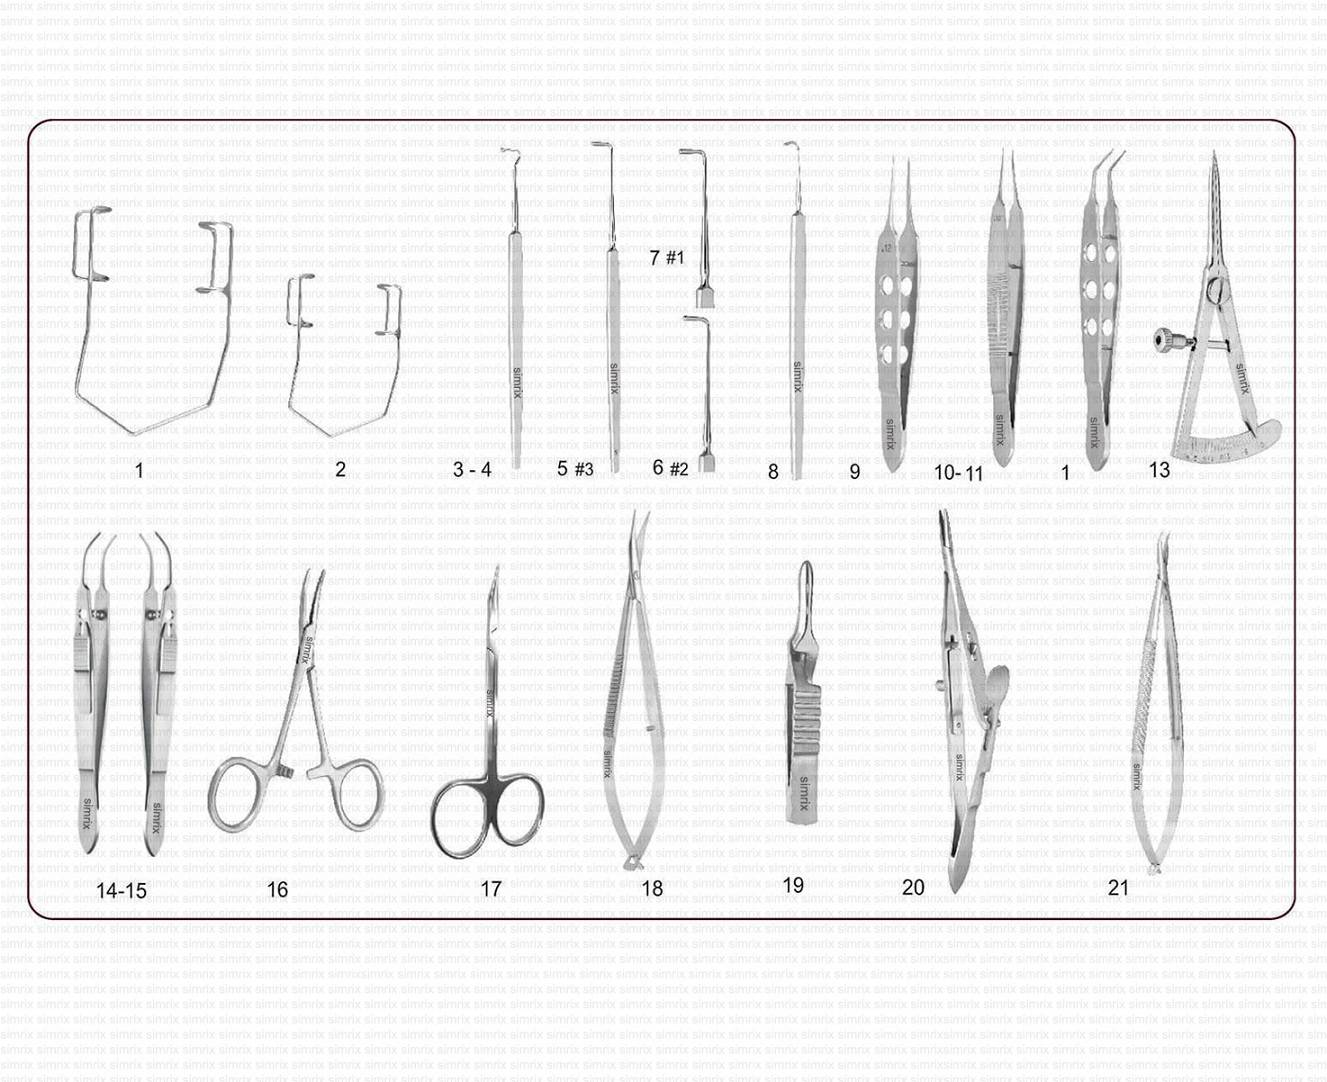 Strabismus Surgery Set 21pieces , with protective case. Fully Passivated